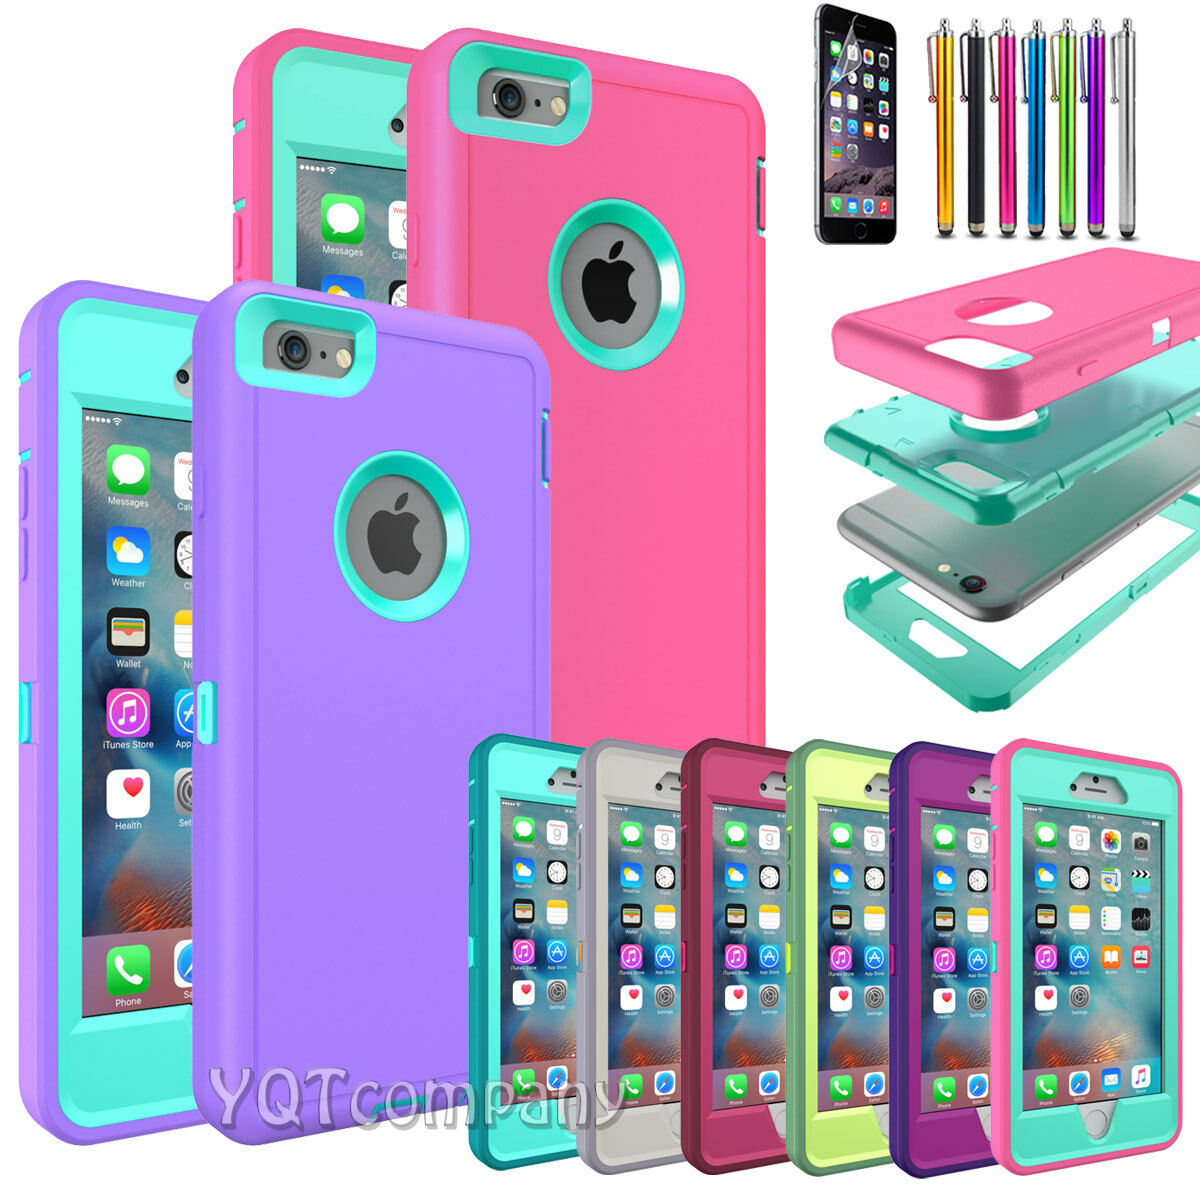 Hard Back ShockProof Slim Hybrid Phone Case Cover iPhone 5s